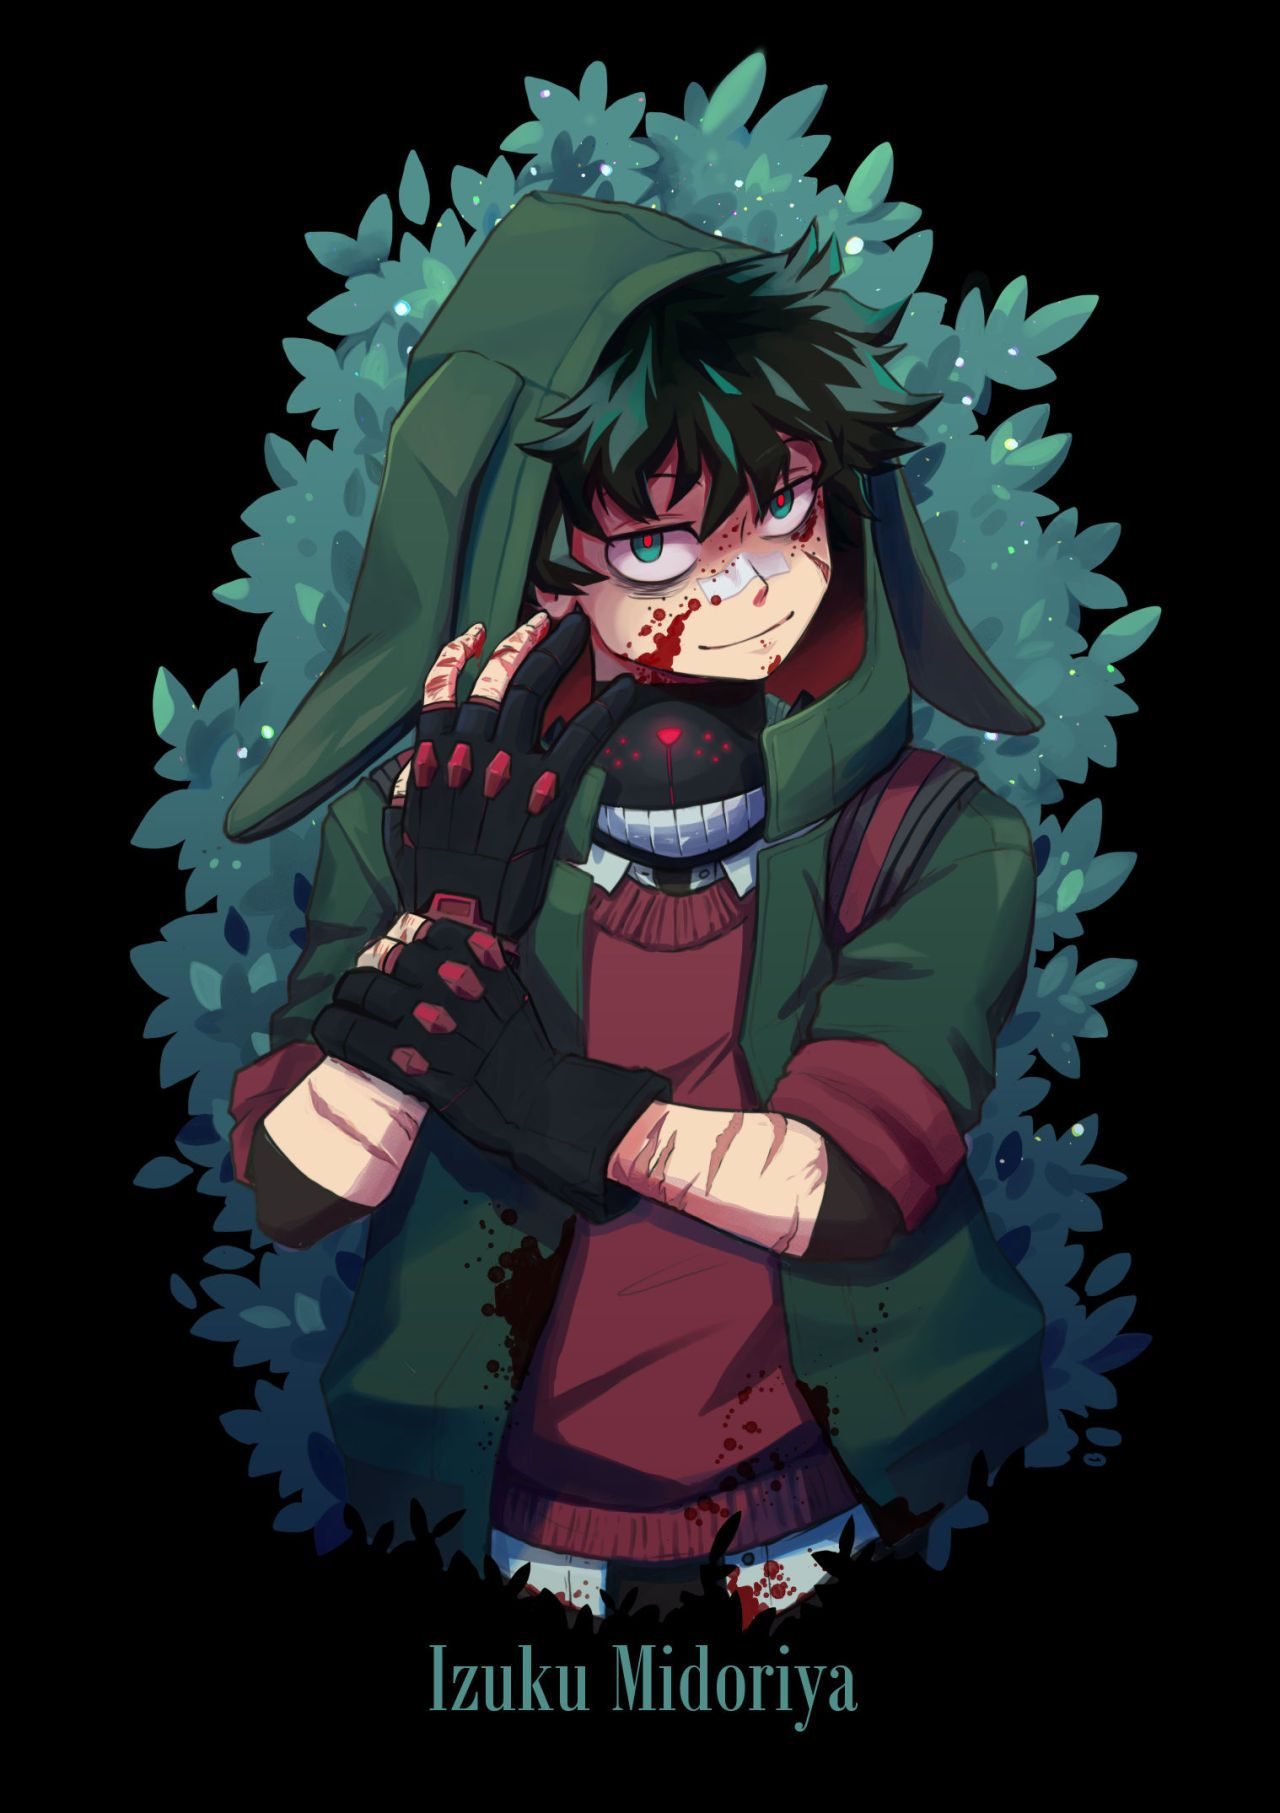 Pin By Matthew On Animes Villain Deku Hero My Hero Academia